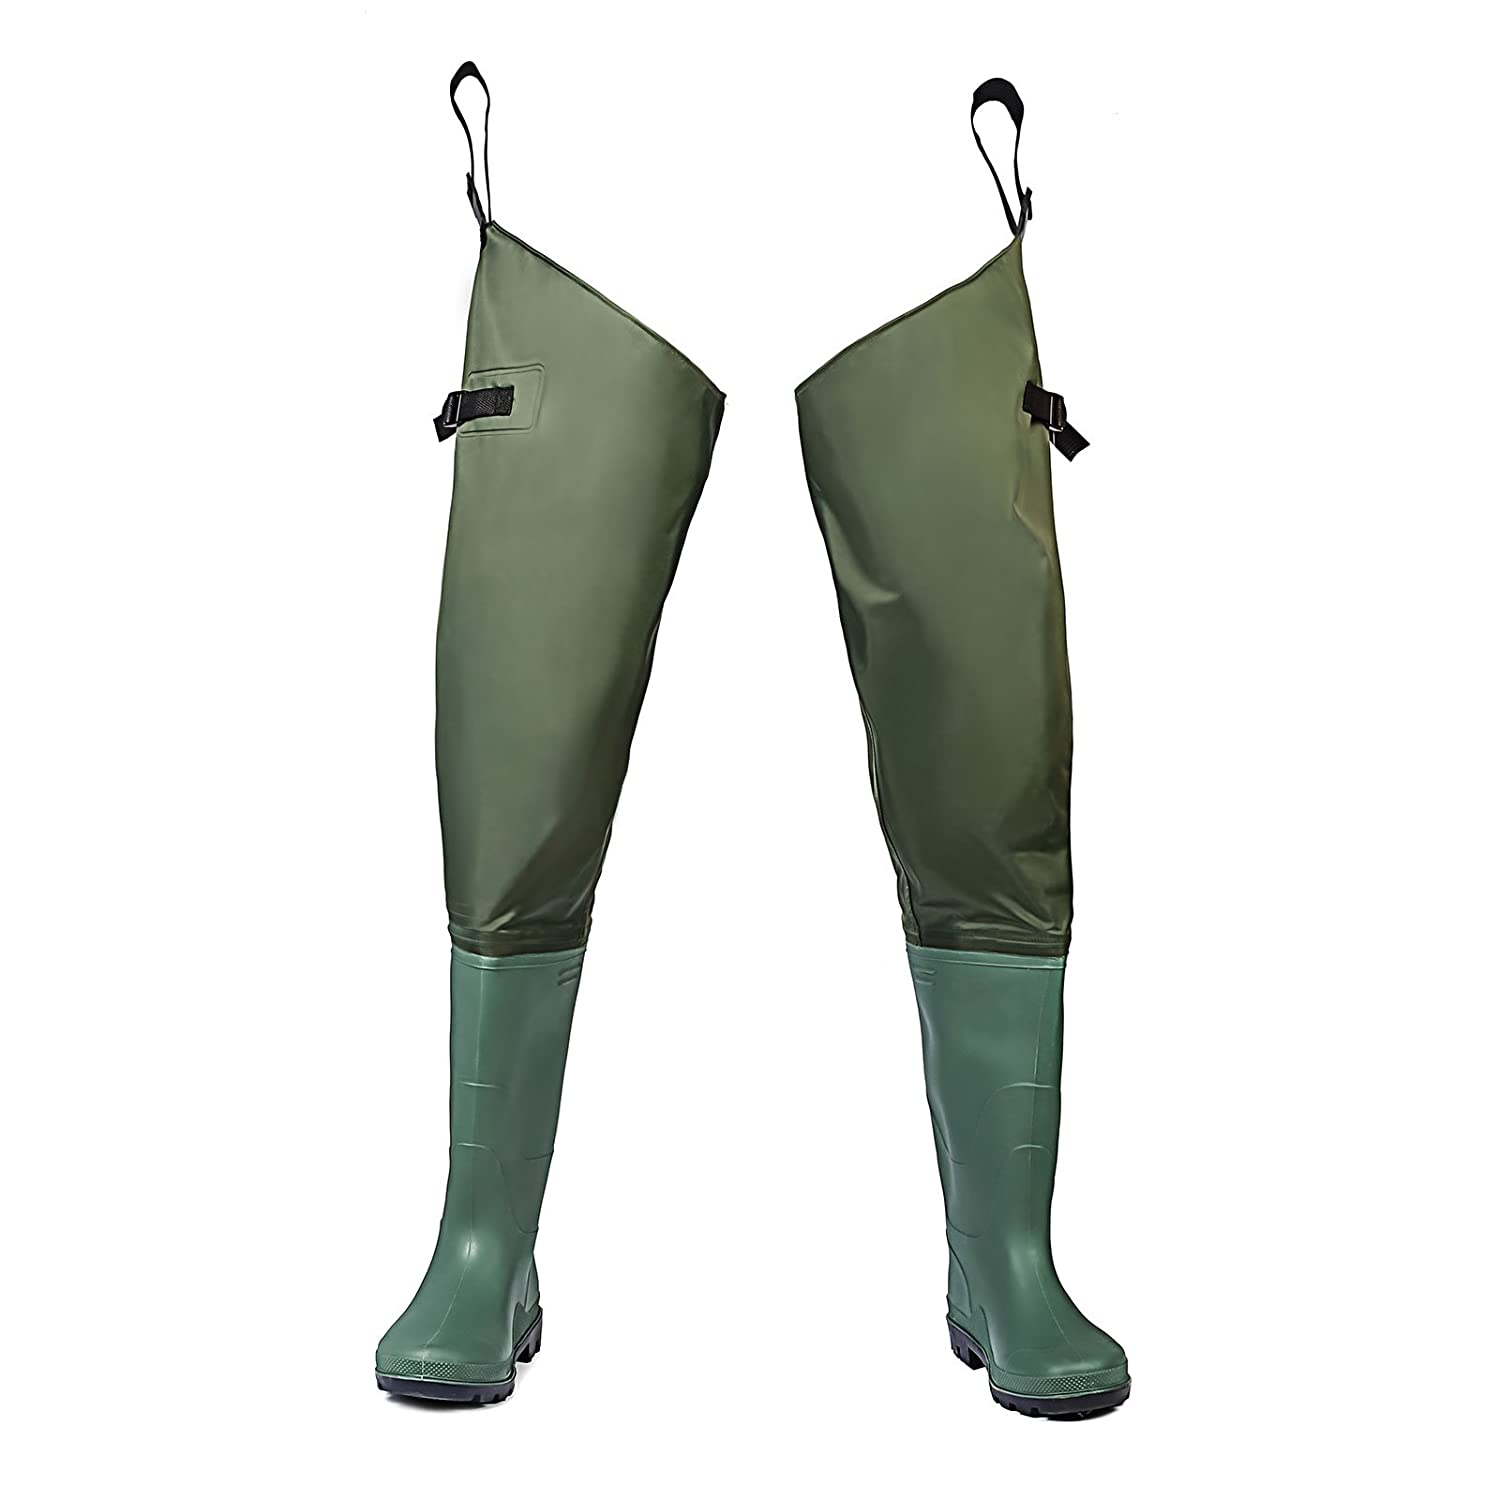 FISHINGSIR Fishing Hip Waders for Men with Boots Waterproof Breathable Hip Boots Women